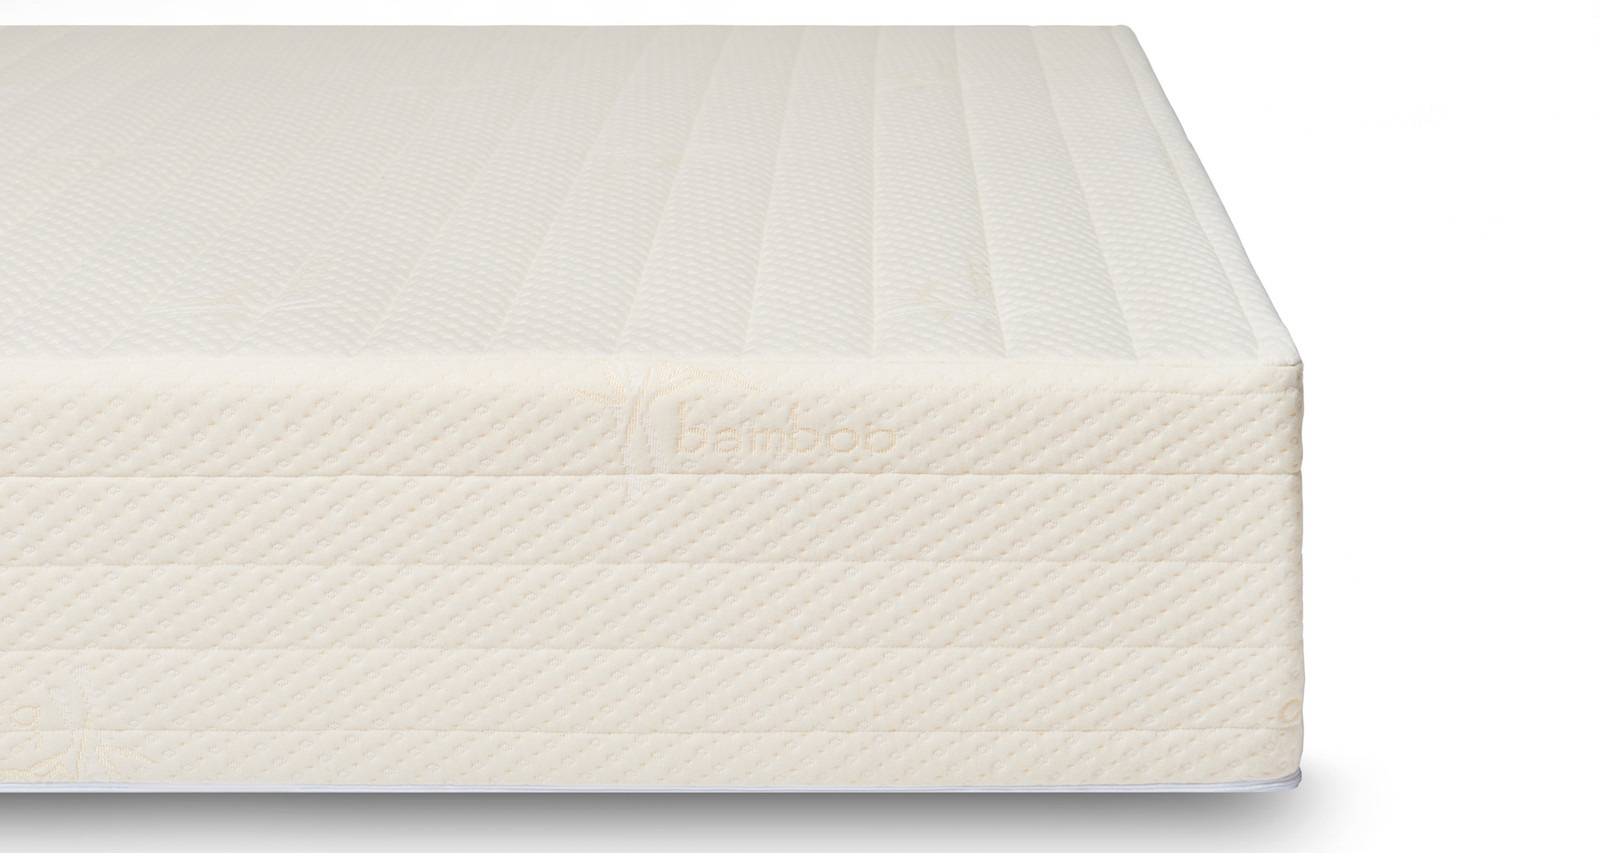 Memory Foam Mattress Queen Memory Foam Supplies An Ideal Sleeping Floor In Standard Itu0027s